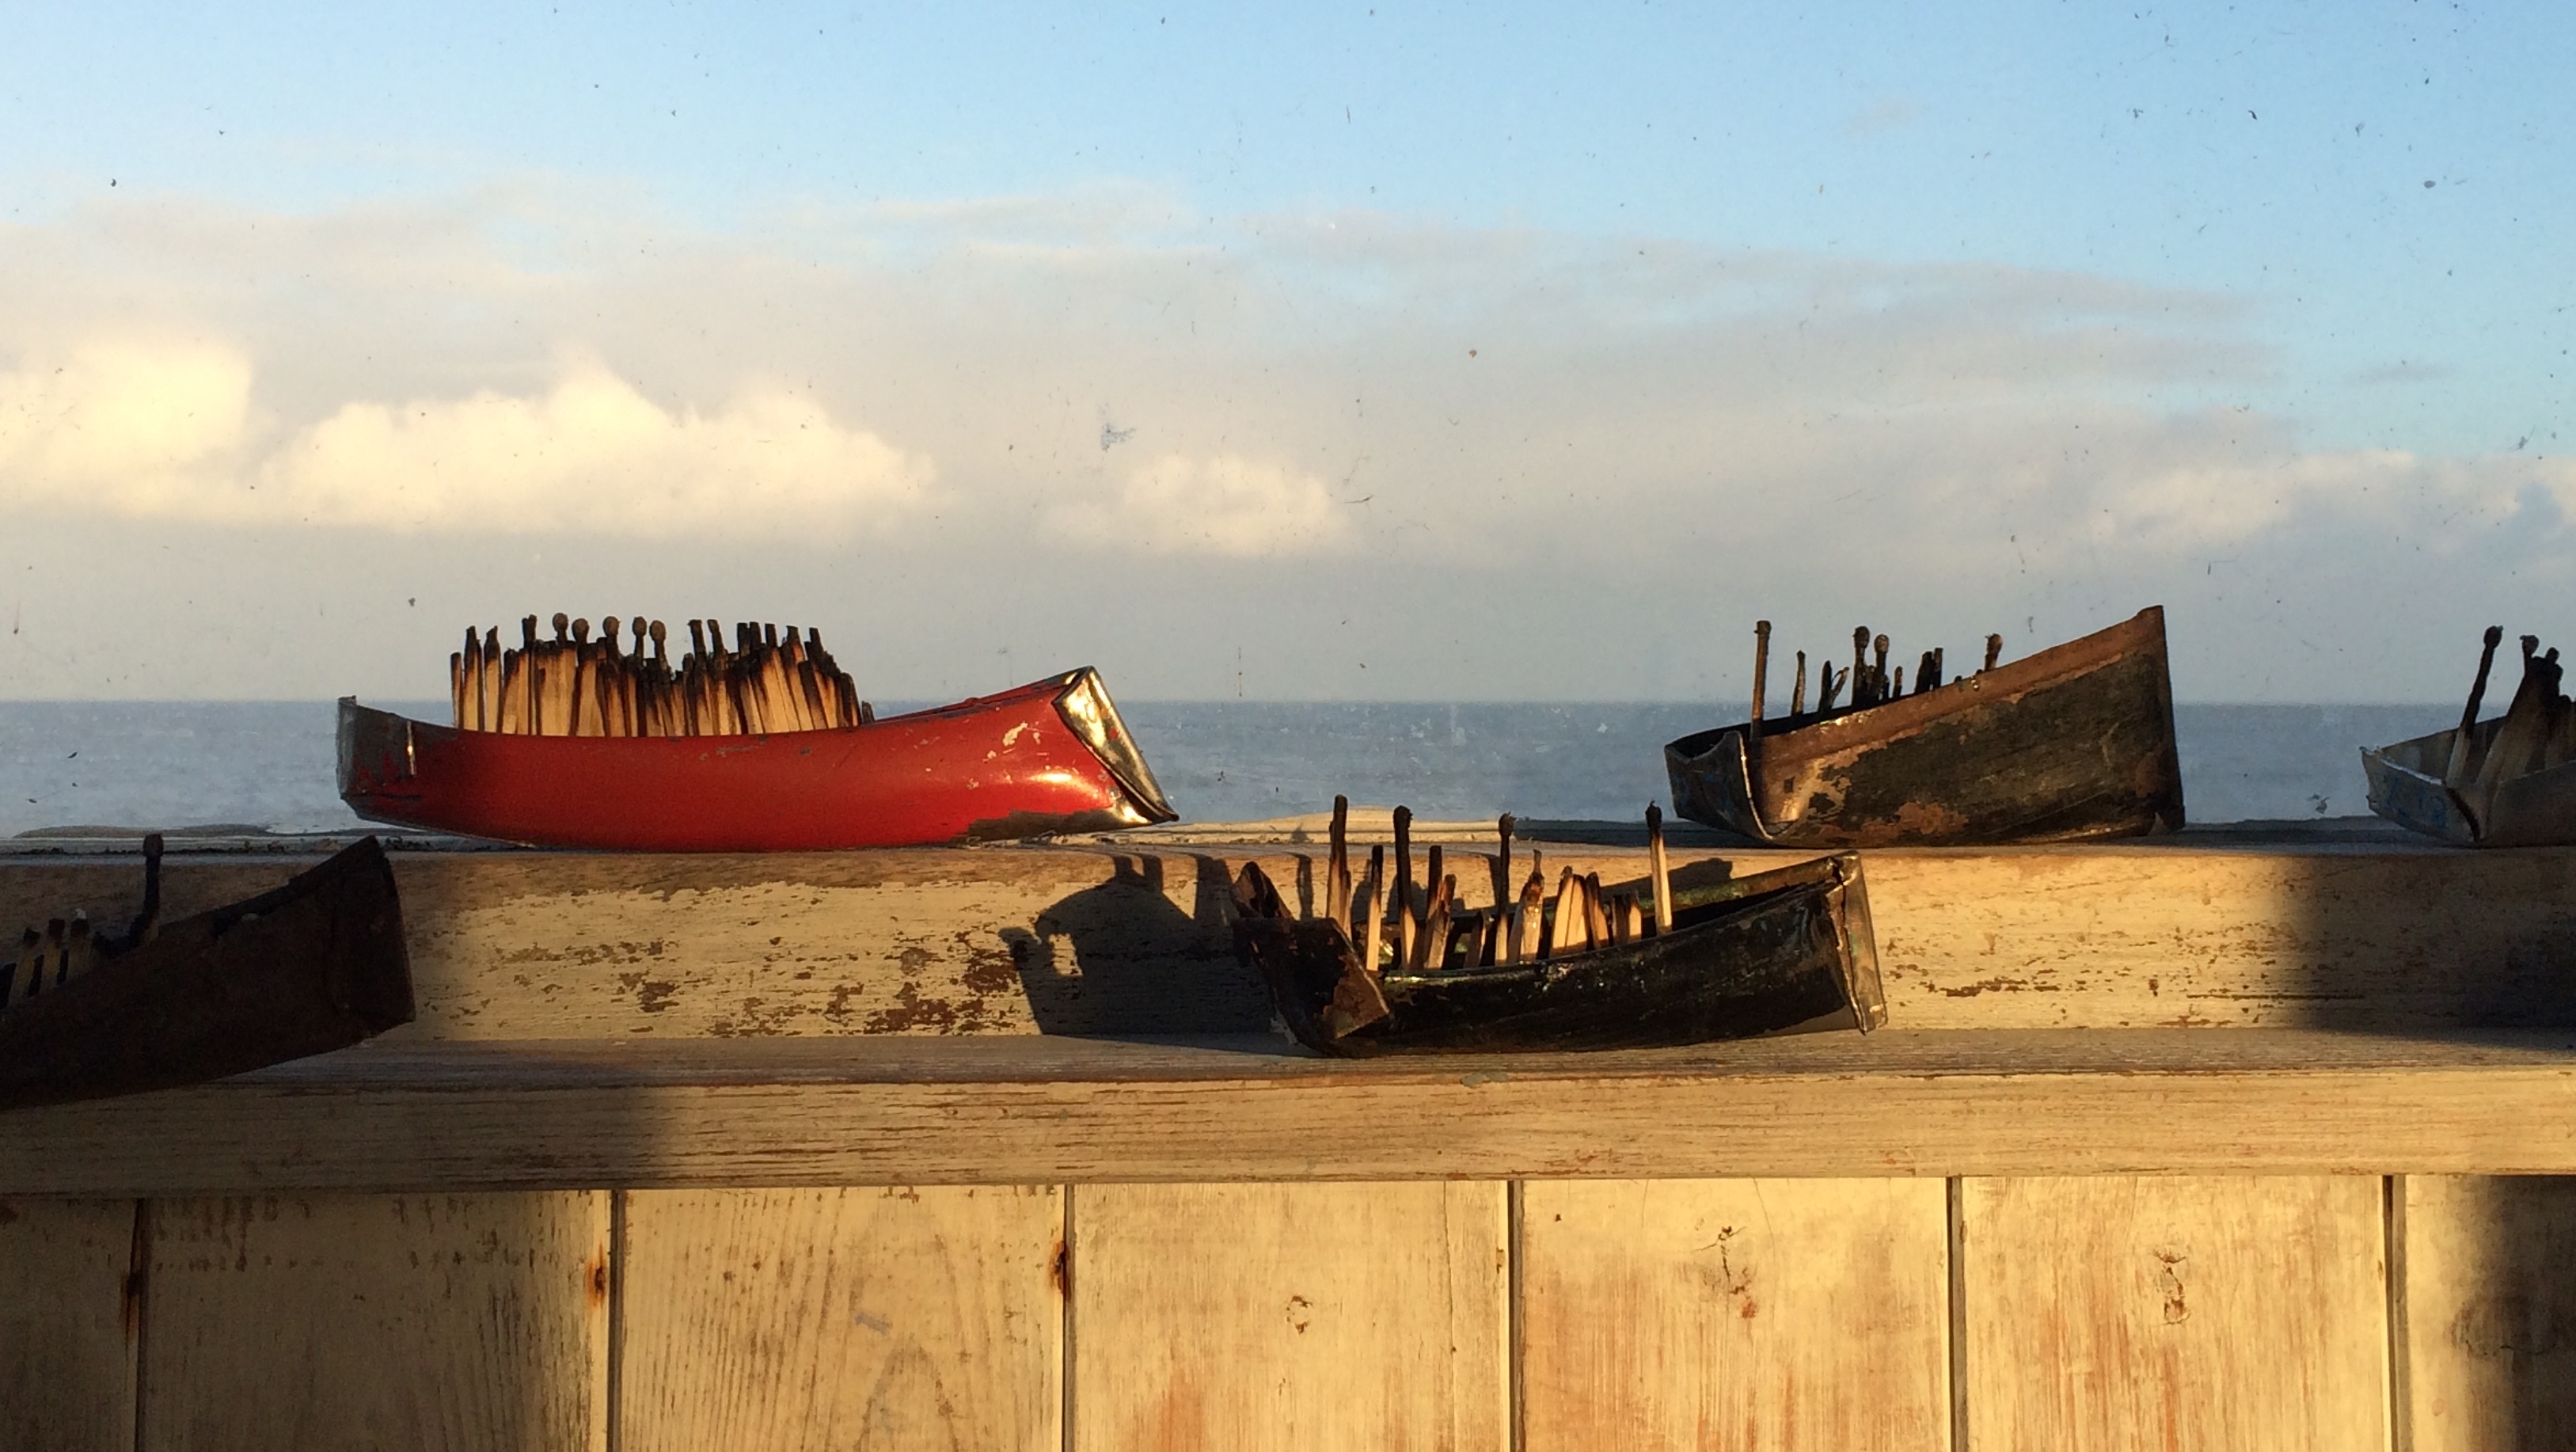 dark_water_burning_world_issam_kourbaaldeburgh_lookout6